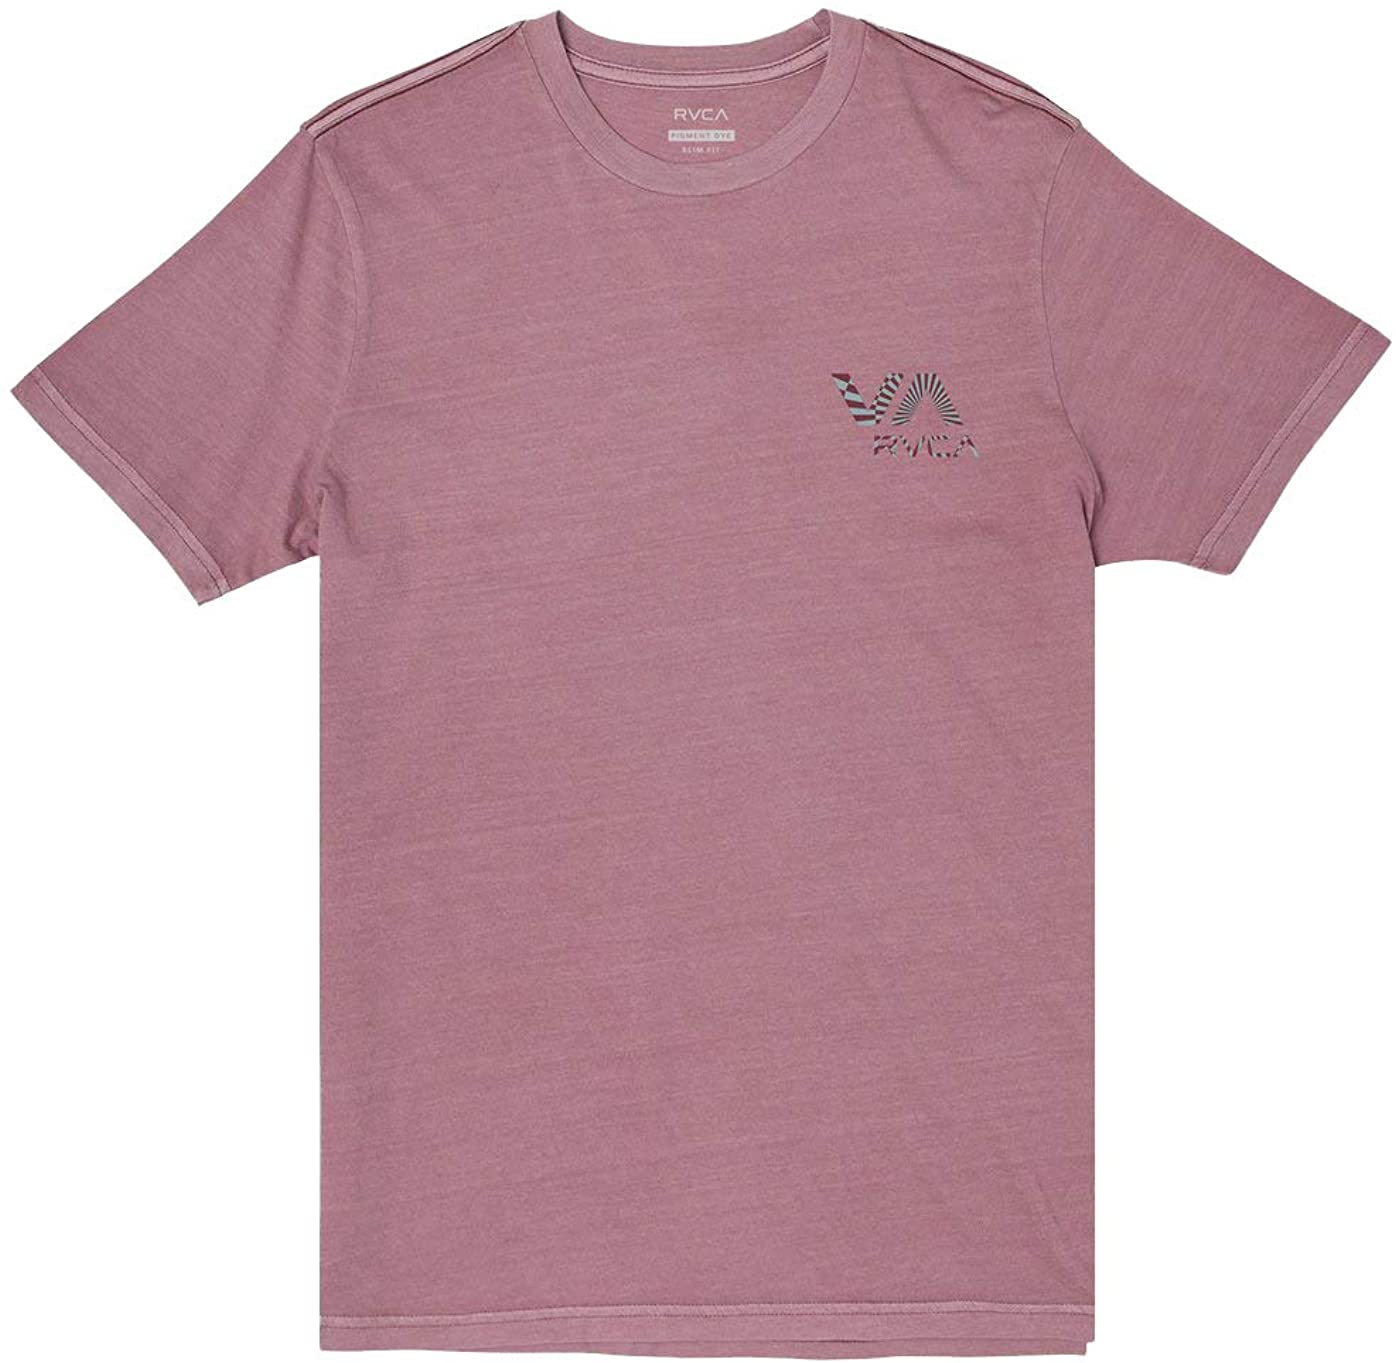 RVCA Men's Mayday Short Sleeve T-Shirt